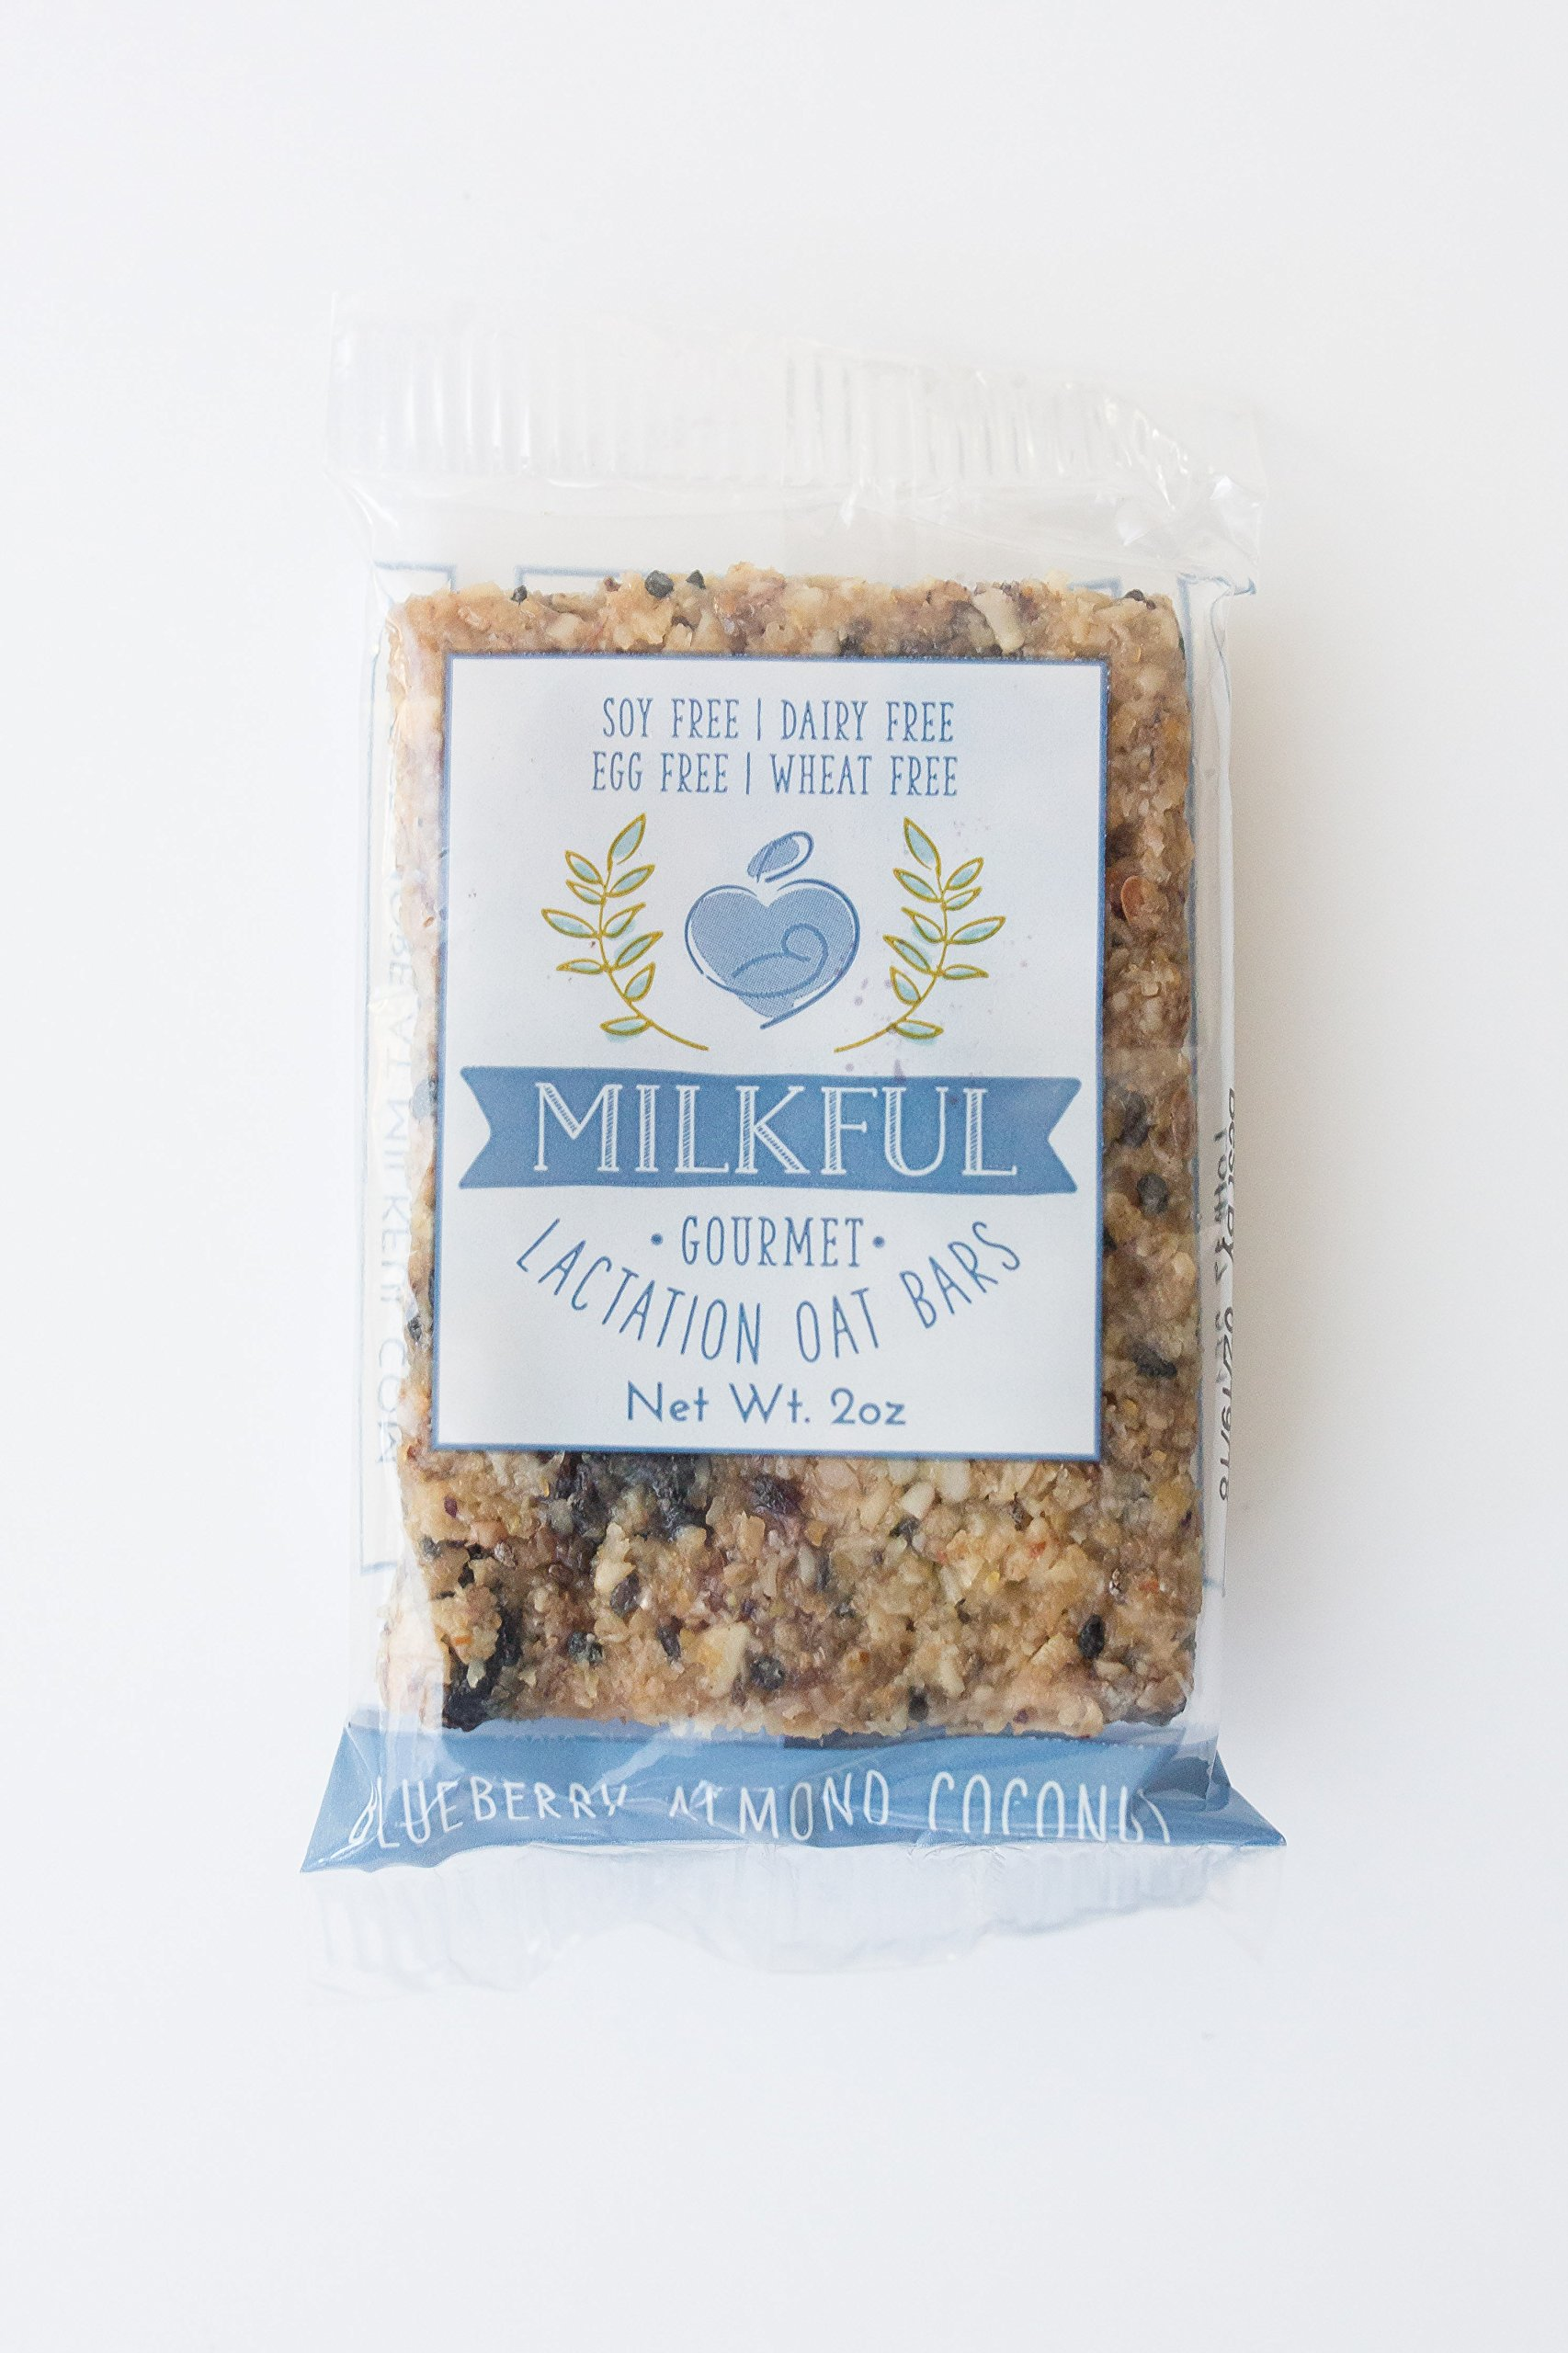 MILKFUL Lactation Bars- Wholesome Alternative to Lactation Cookies for Breastfeeding Moms. Helps Boost Breast Milk Supply.12 Bars. Dairy Free, Egg Free, Soy Free, Wheat Free (Blueberry Almond Coconut) by MILKFUL  (Image #3)